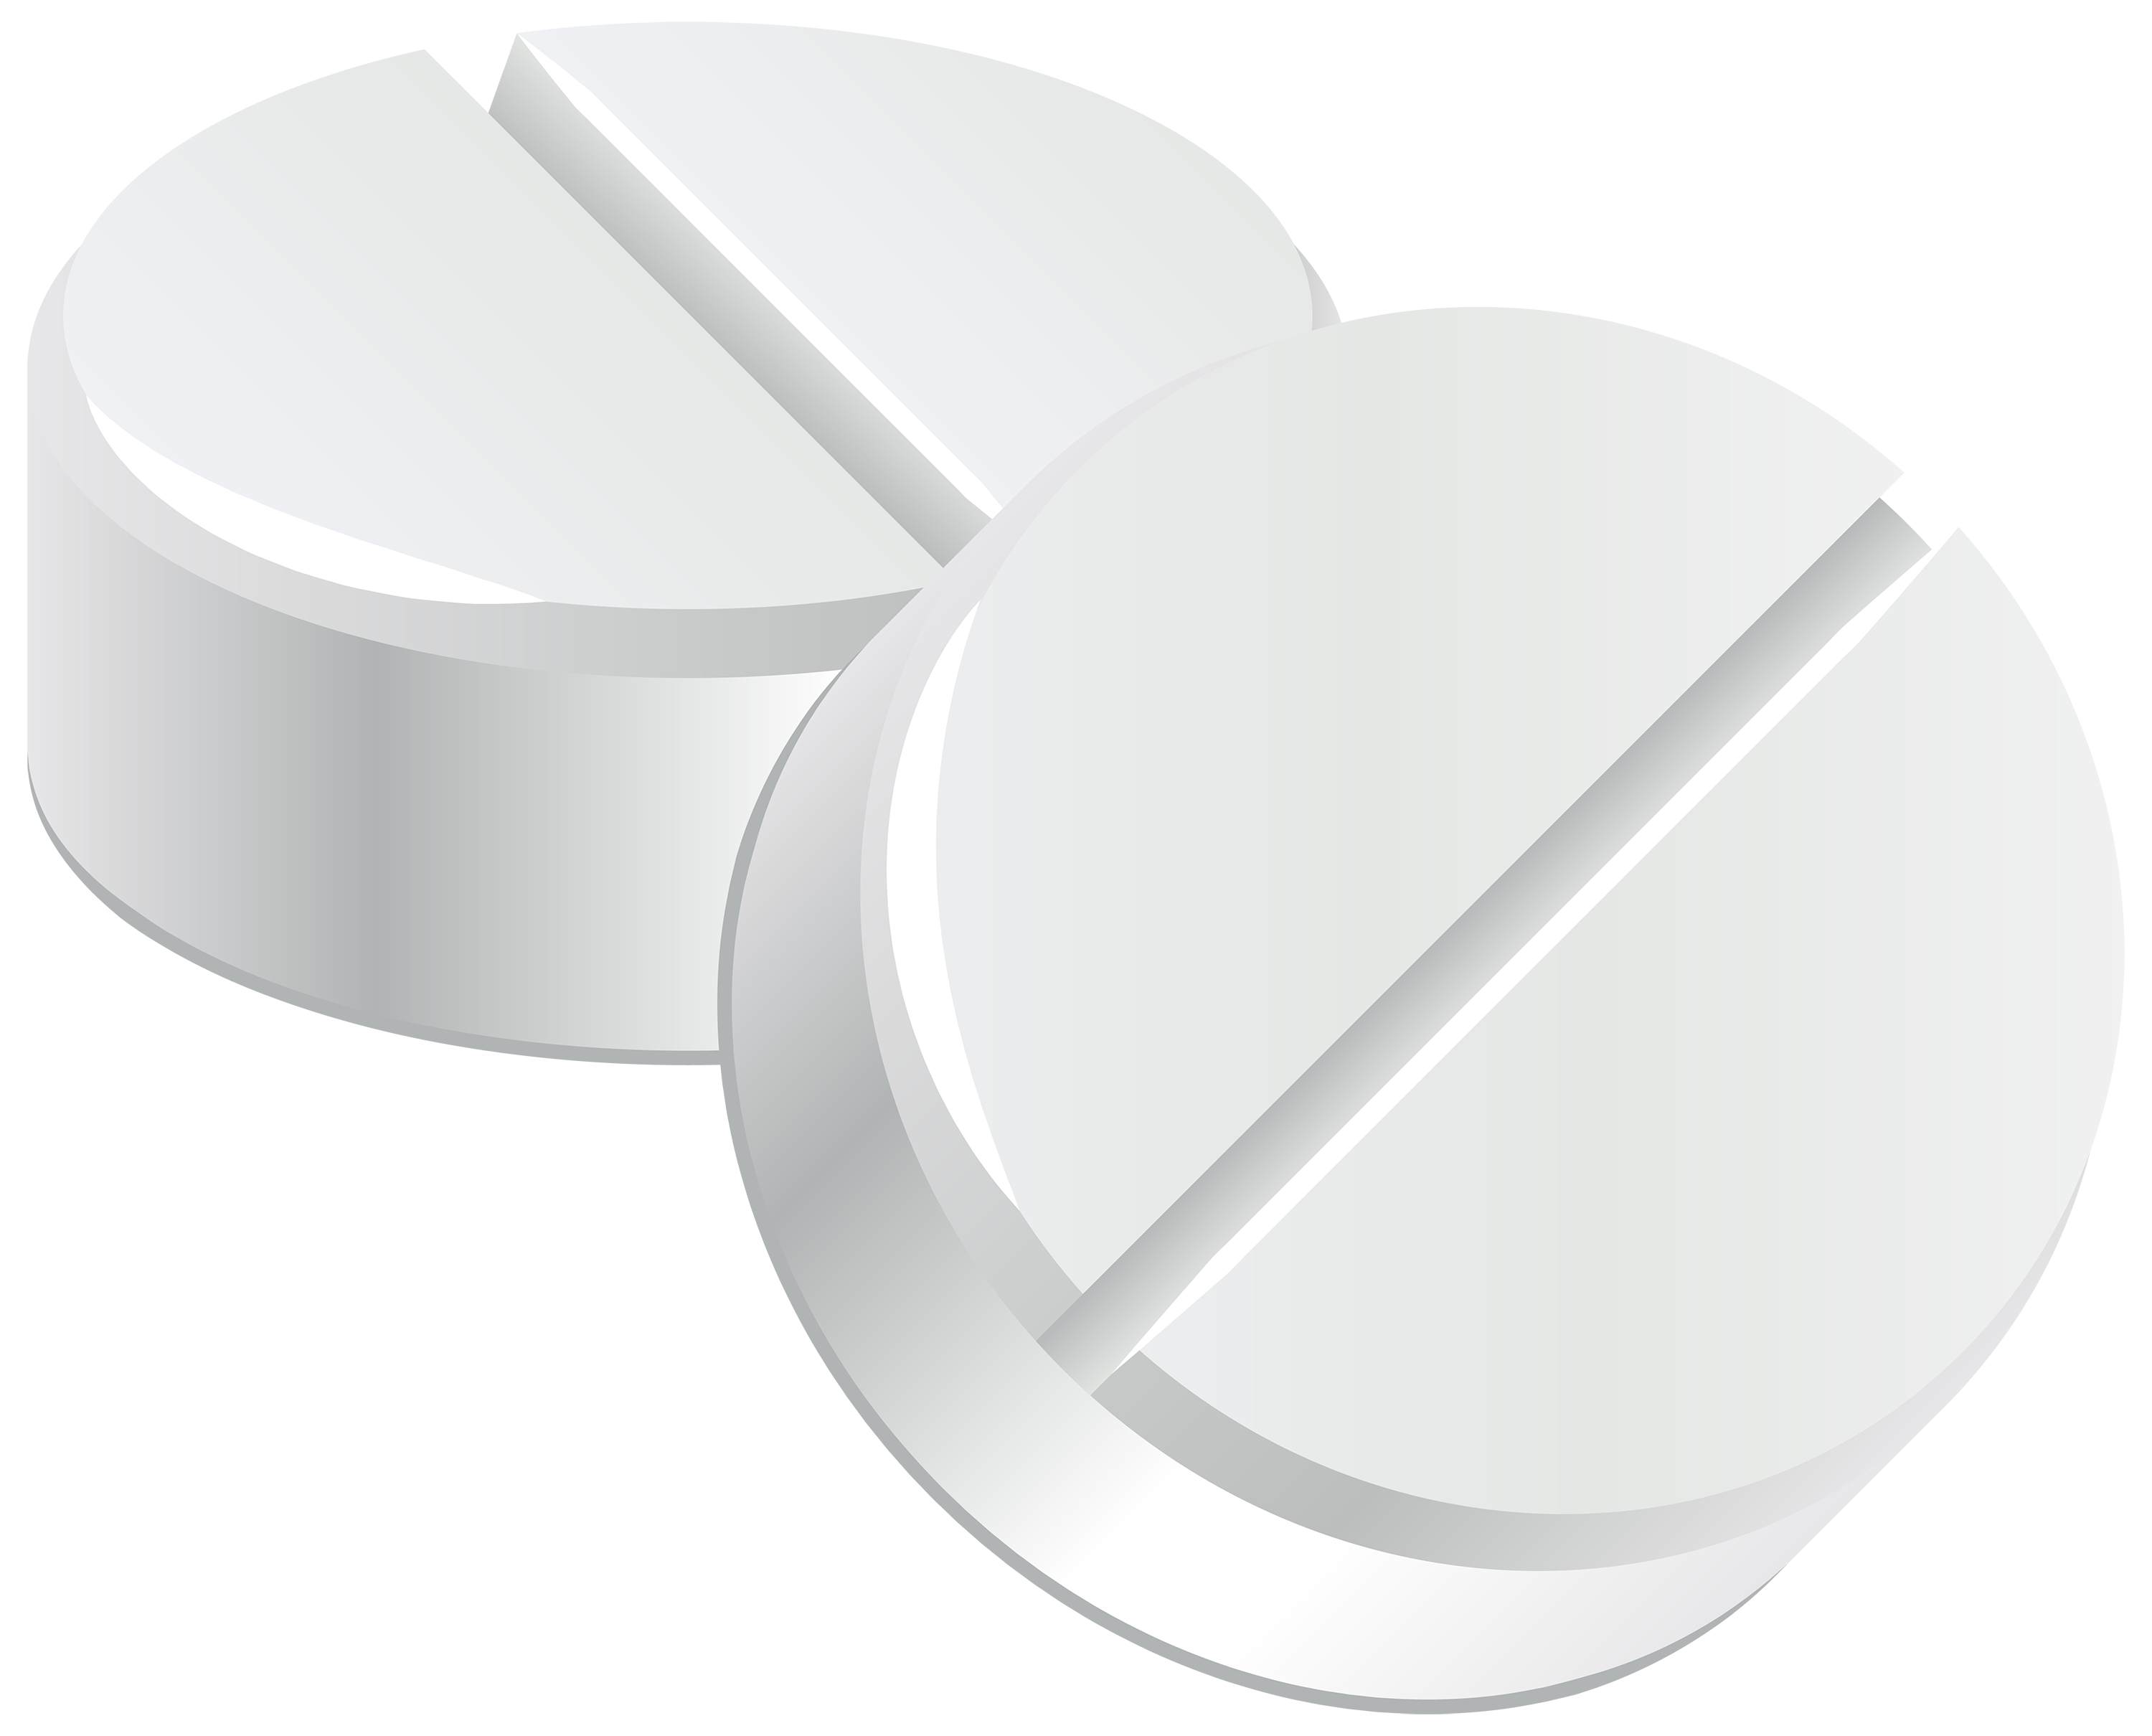 High Resolution Pills Png Icon image #33148